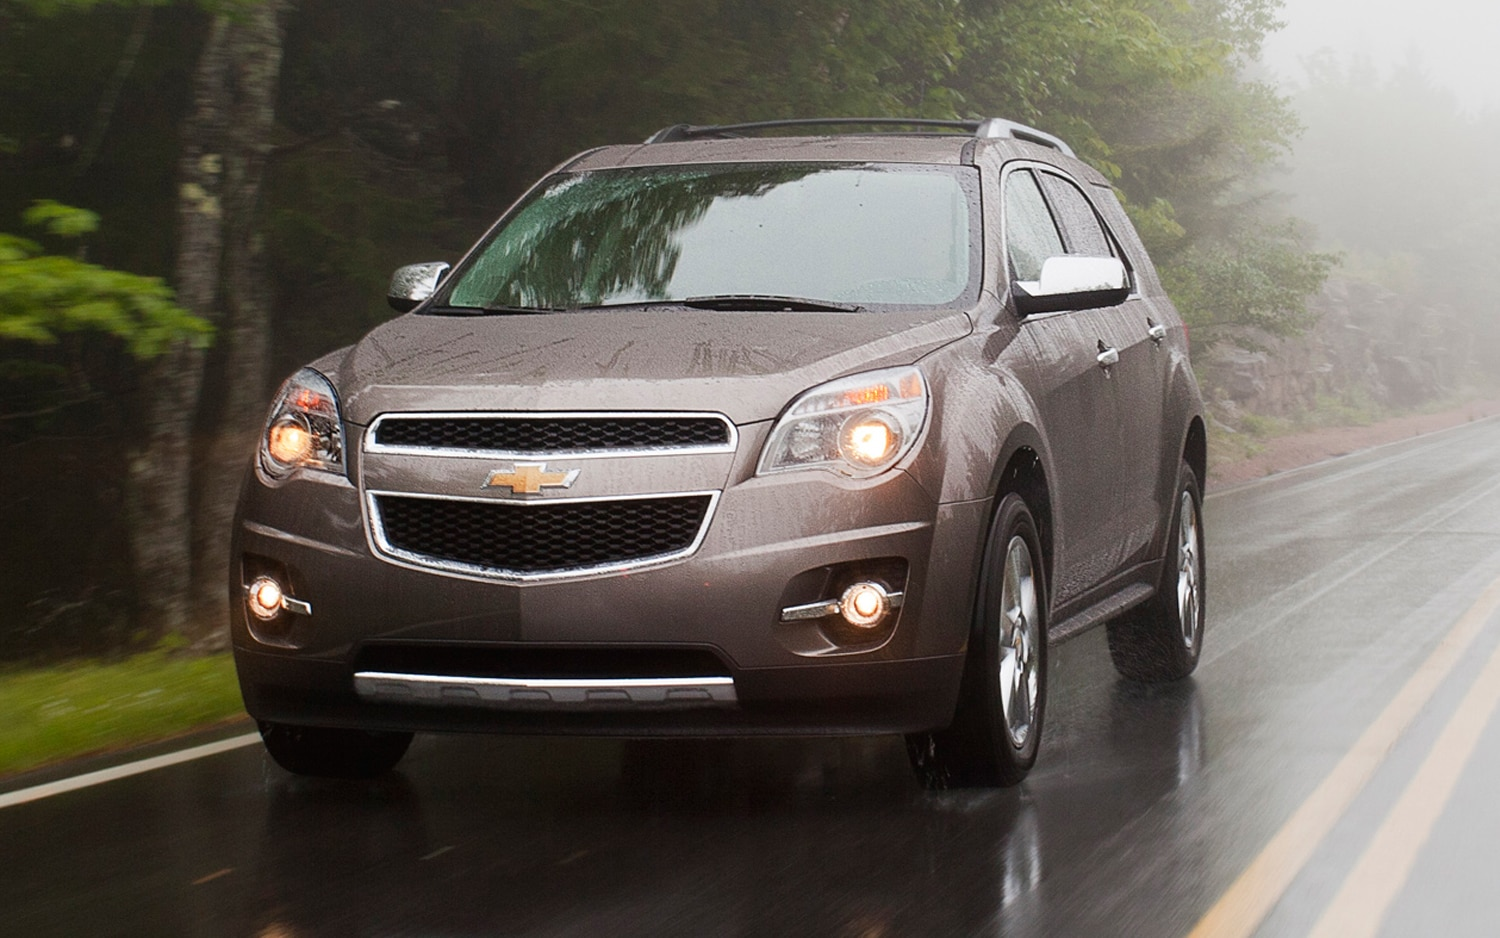 2013 Chevrolet Equinox In Motion